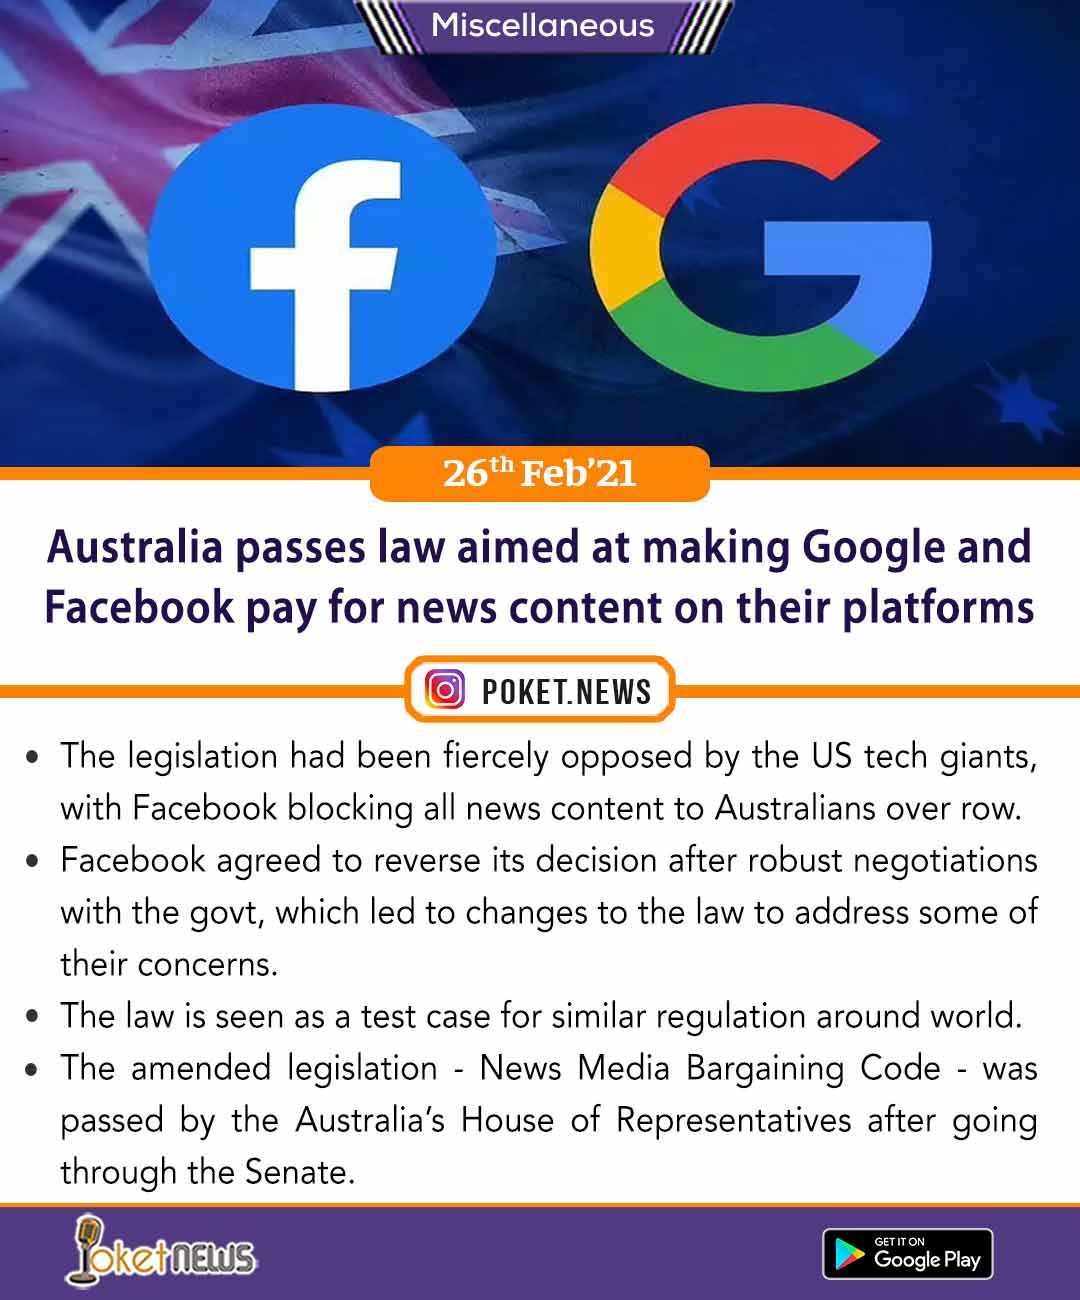 Australia passes law aimed at making Google and Facebook pay for news content on their platforms